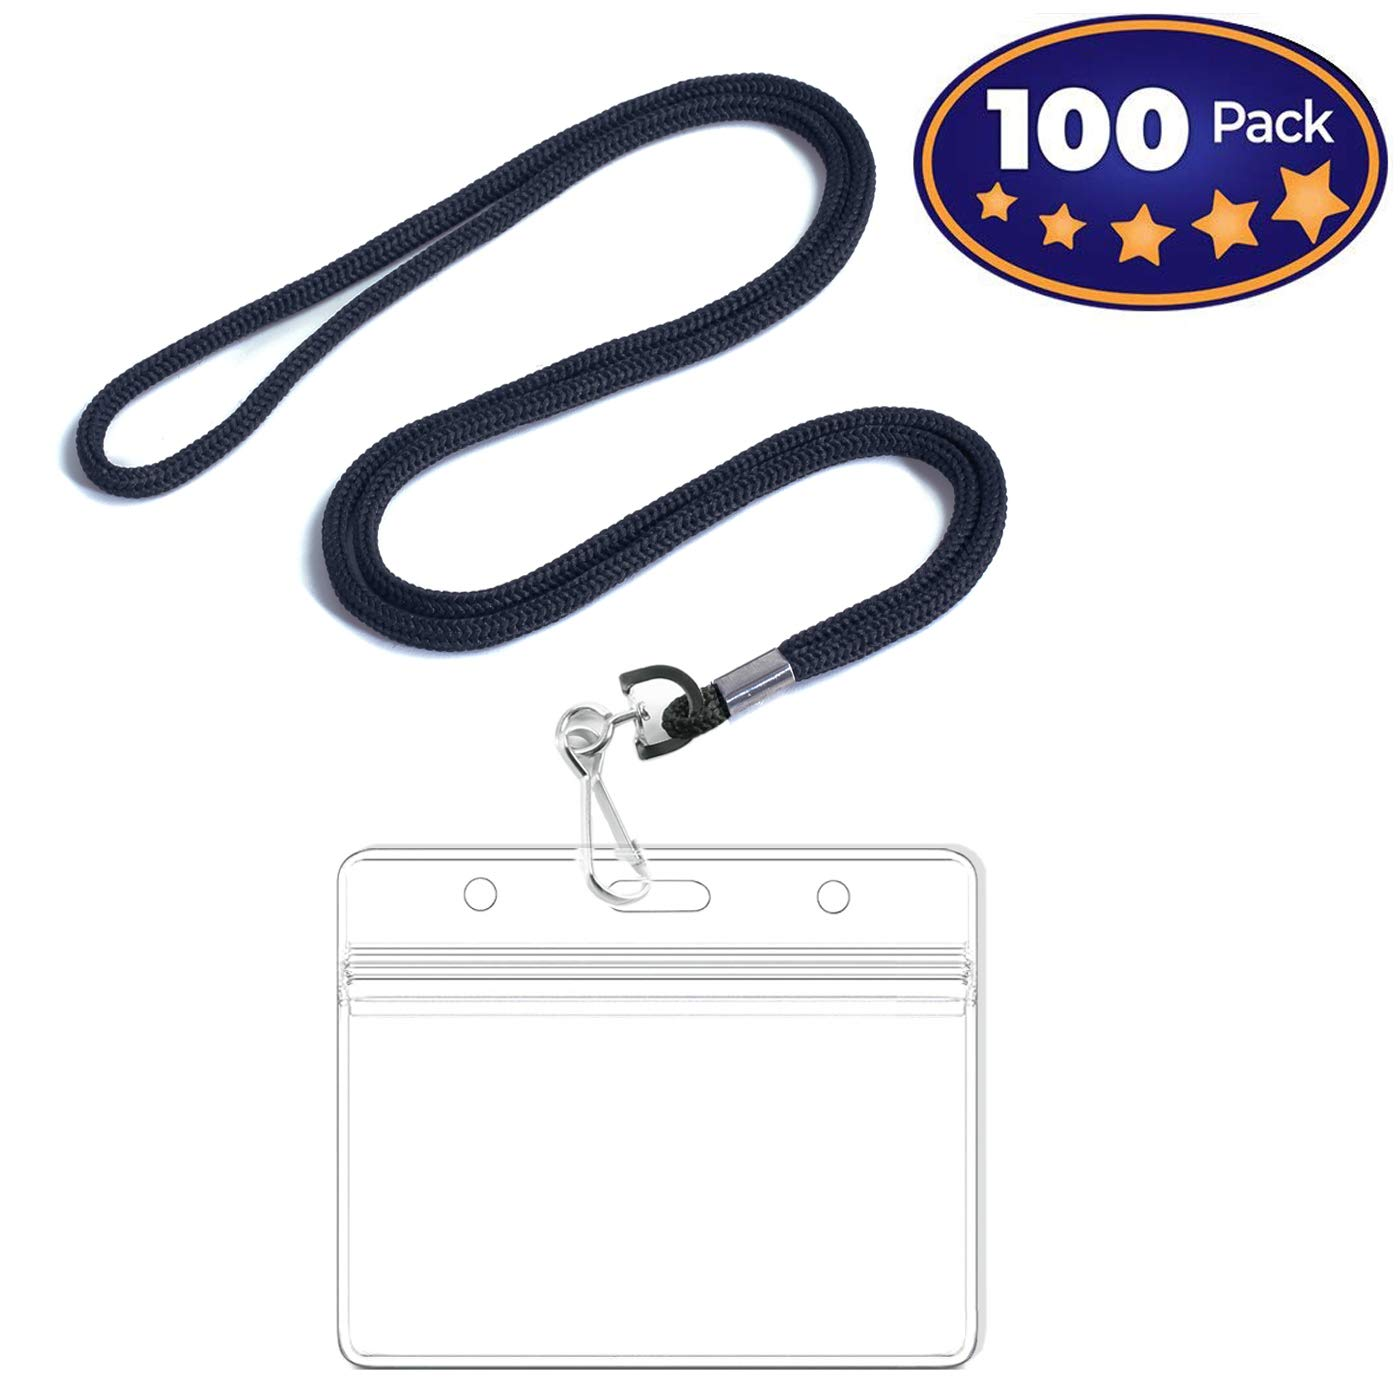 Premium Horizontal ID Tag Nametag Name Badge Holders with Woven Lanyard (Satin Black 100 Pack) - Plastic Name Badge Holders with Lanyard - Business Events Favors-by IRISING by LION KNIGHT (Image #1)